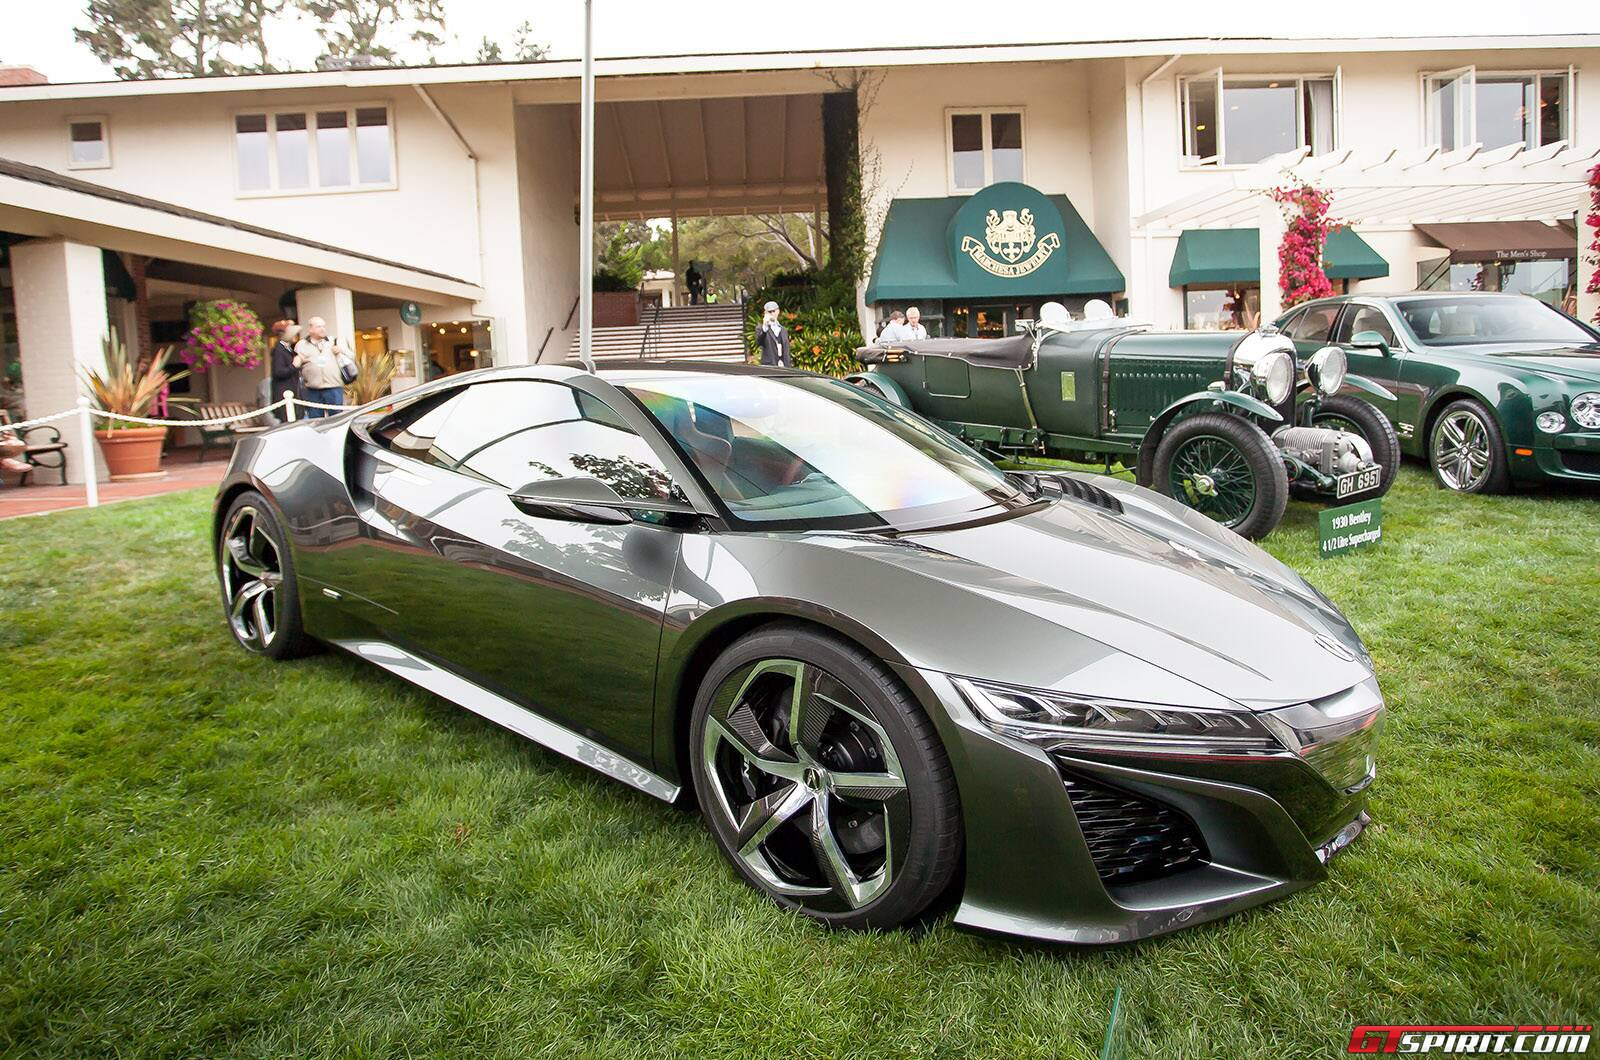 2015 honda nsx to provide 458 excitement for 911 price gtspirit. Black Bedroom Furniture Sets. Home Design Ideas